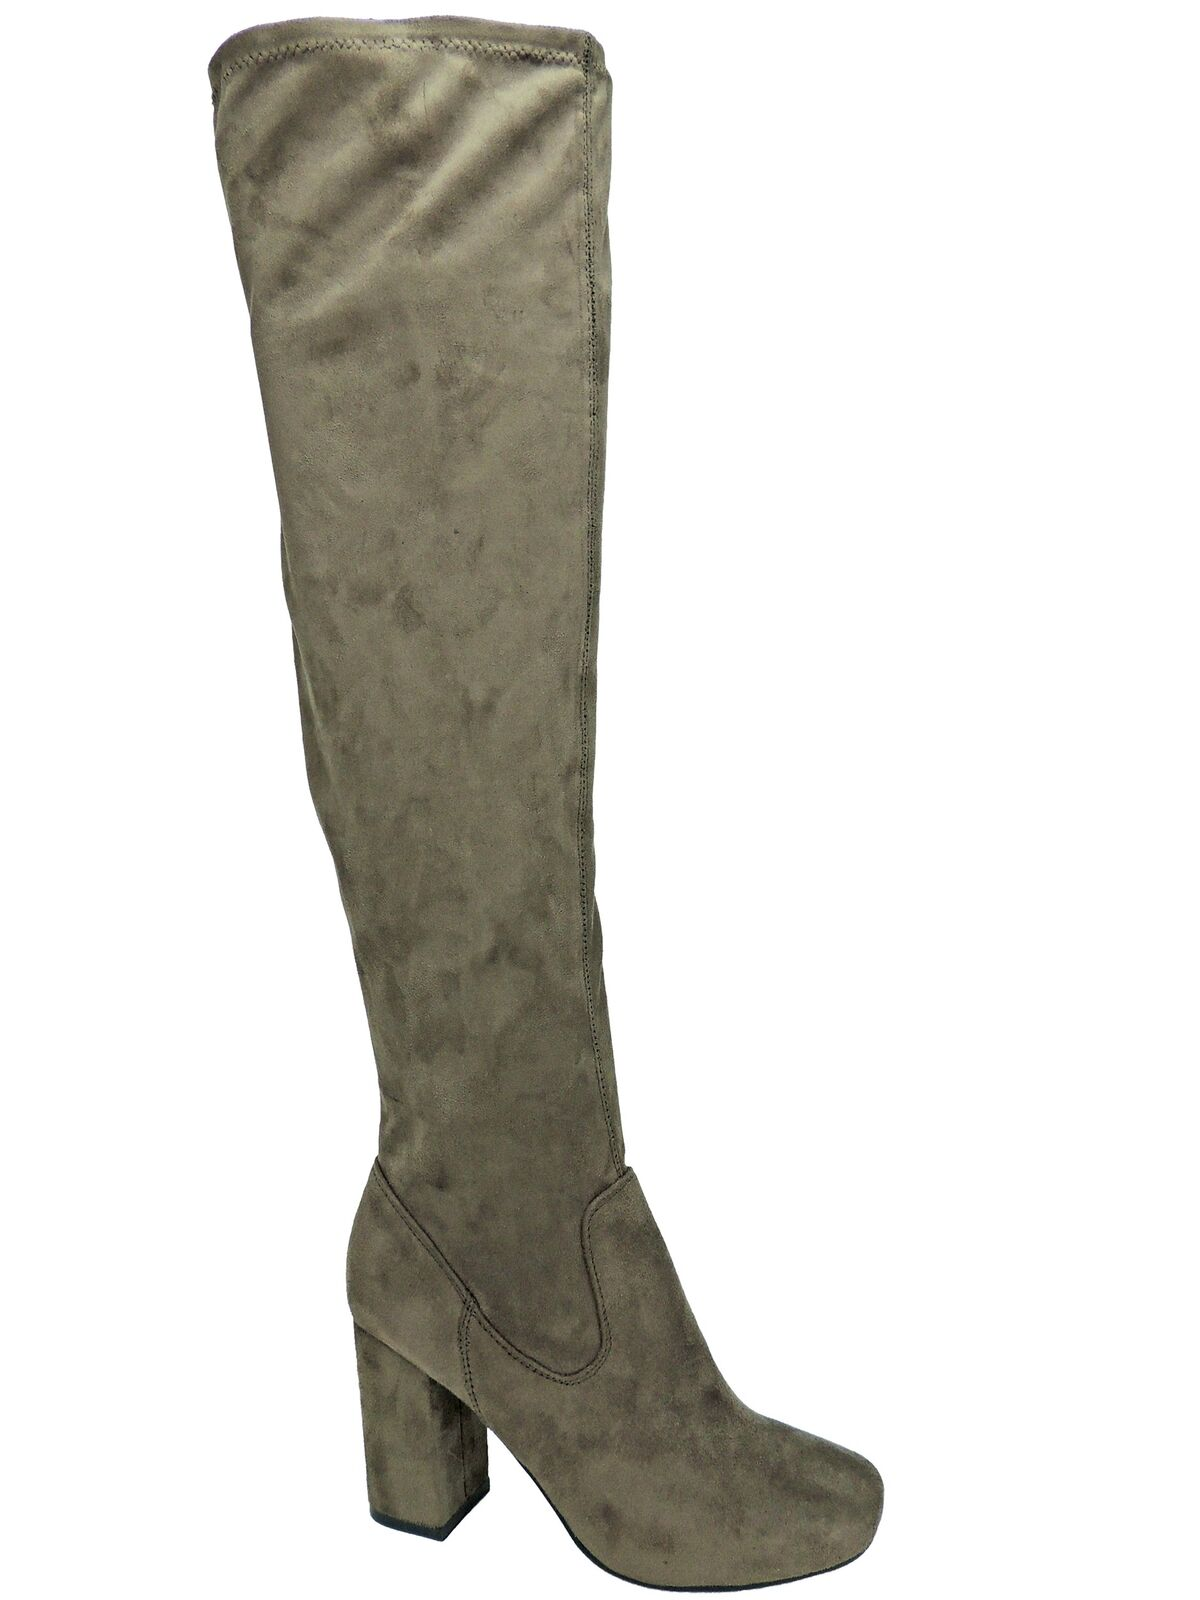 Carlos by Carlos Santana Women's Rumor Over-The-Knee Boots Taupe bluee Size 8.5 M